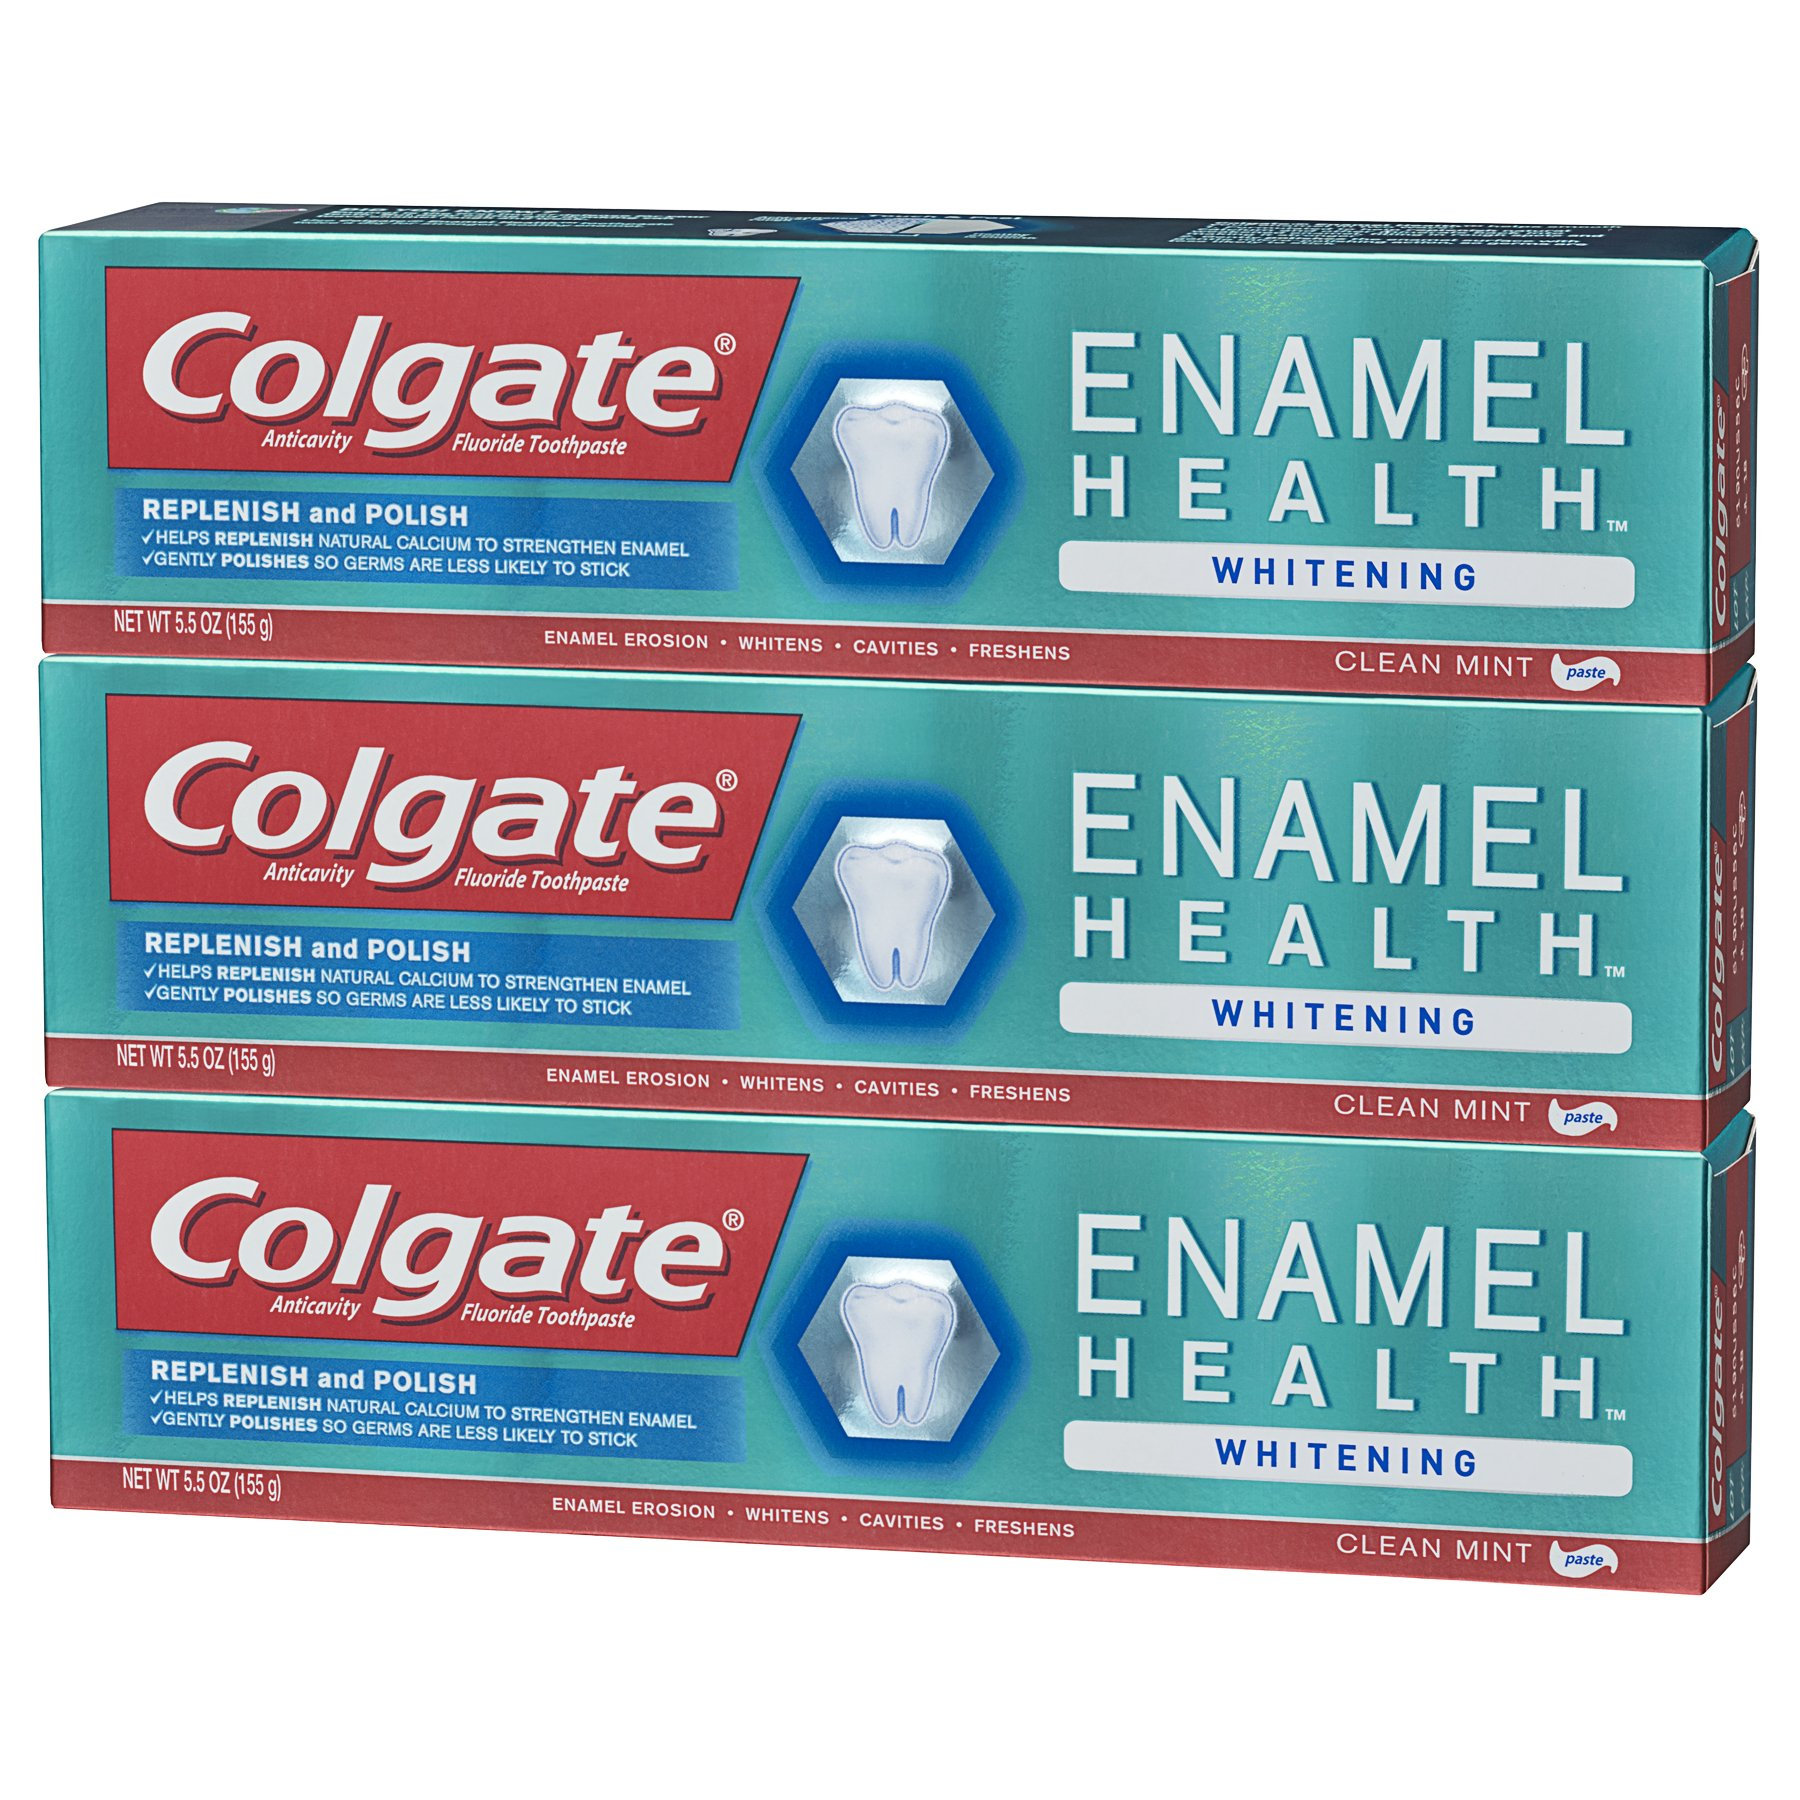 Colgate Enamel Health Whitening Toothpaste - 5.5 ounce (3 Pack) by Colgate (Image #7)